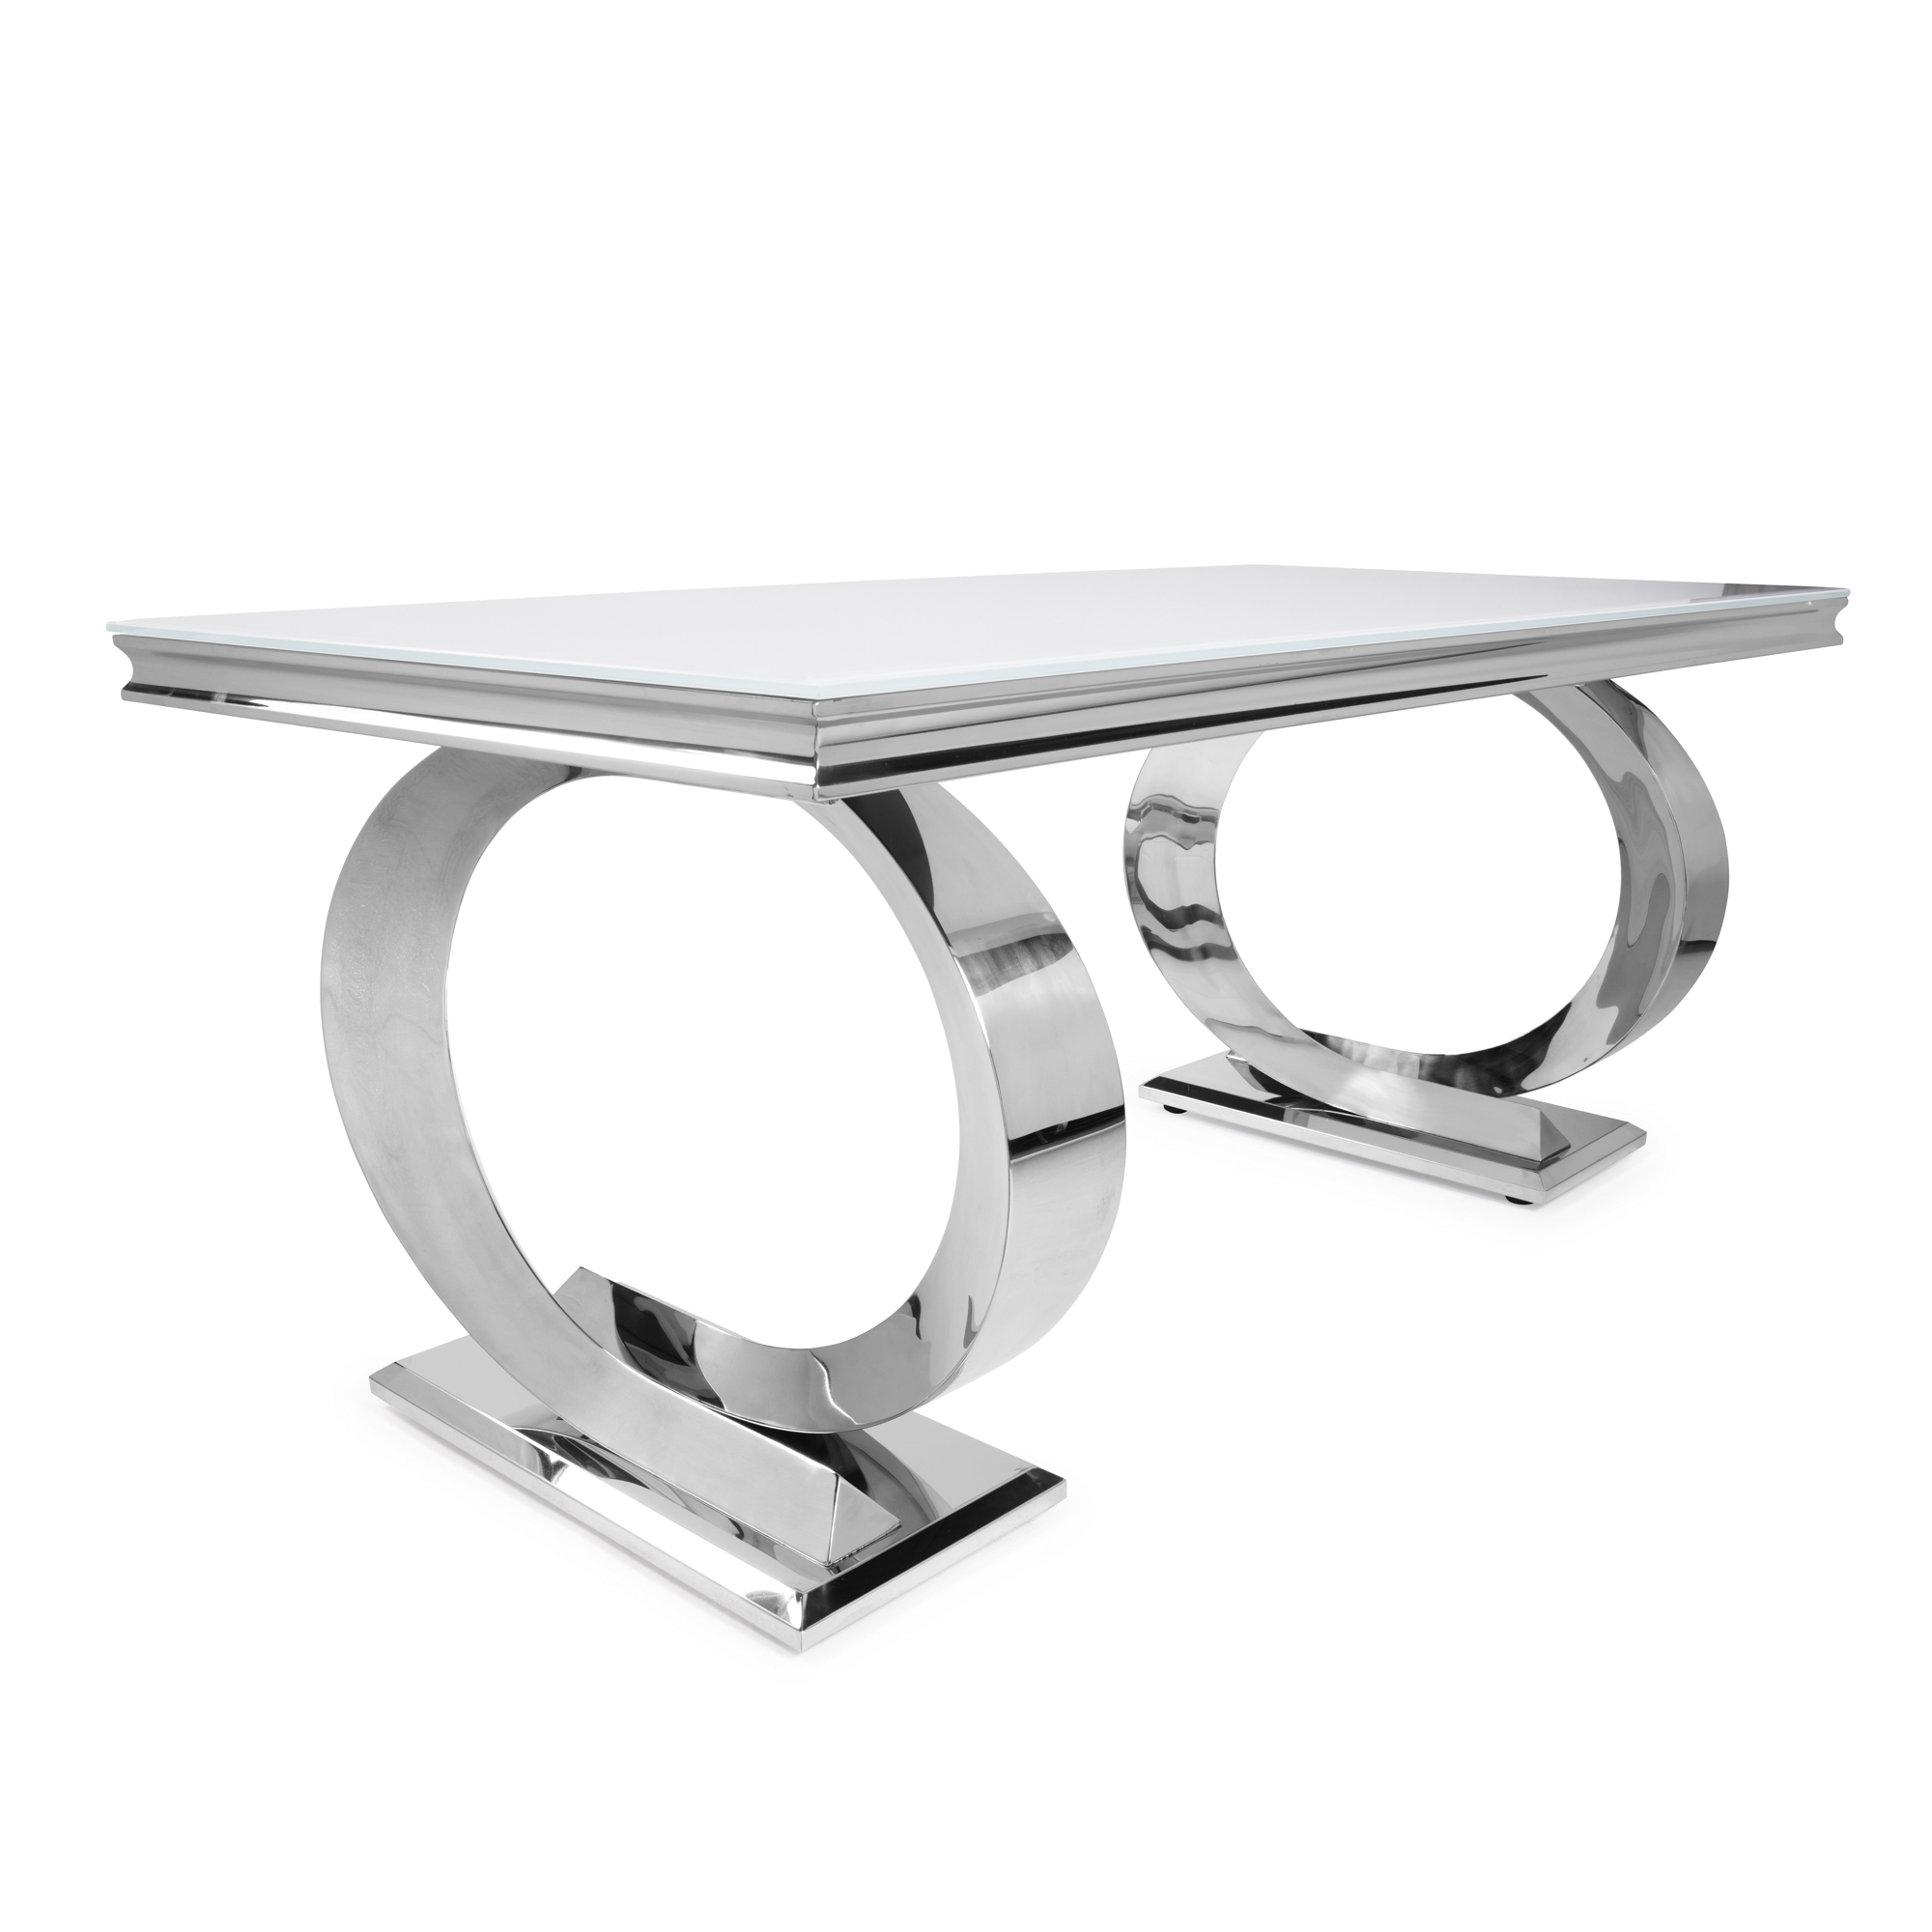 1.8m Pisa Polished Steel Dining White Glass Table Set with 4 Charcoal Linen Dining Chair